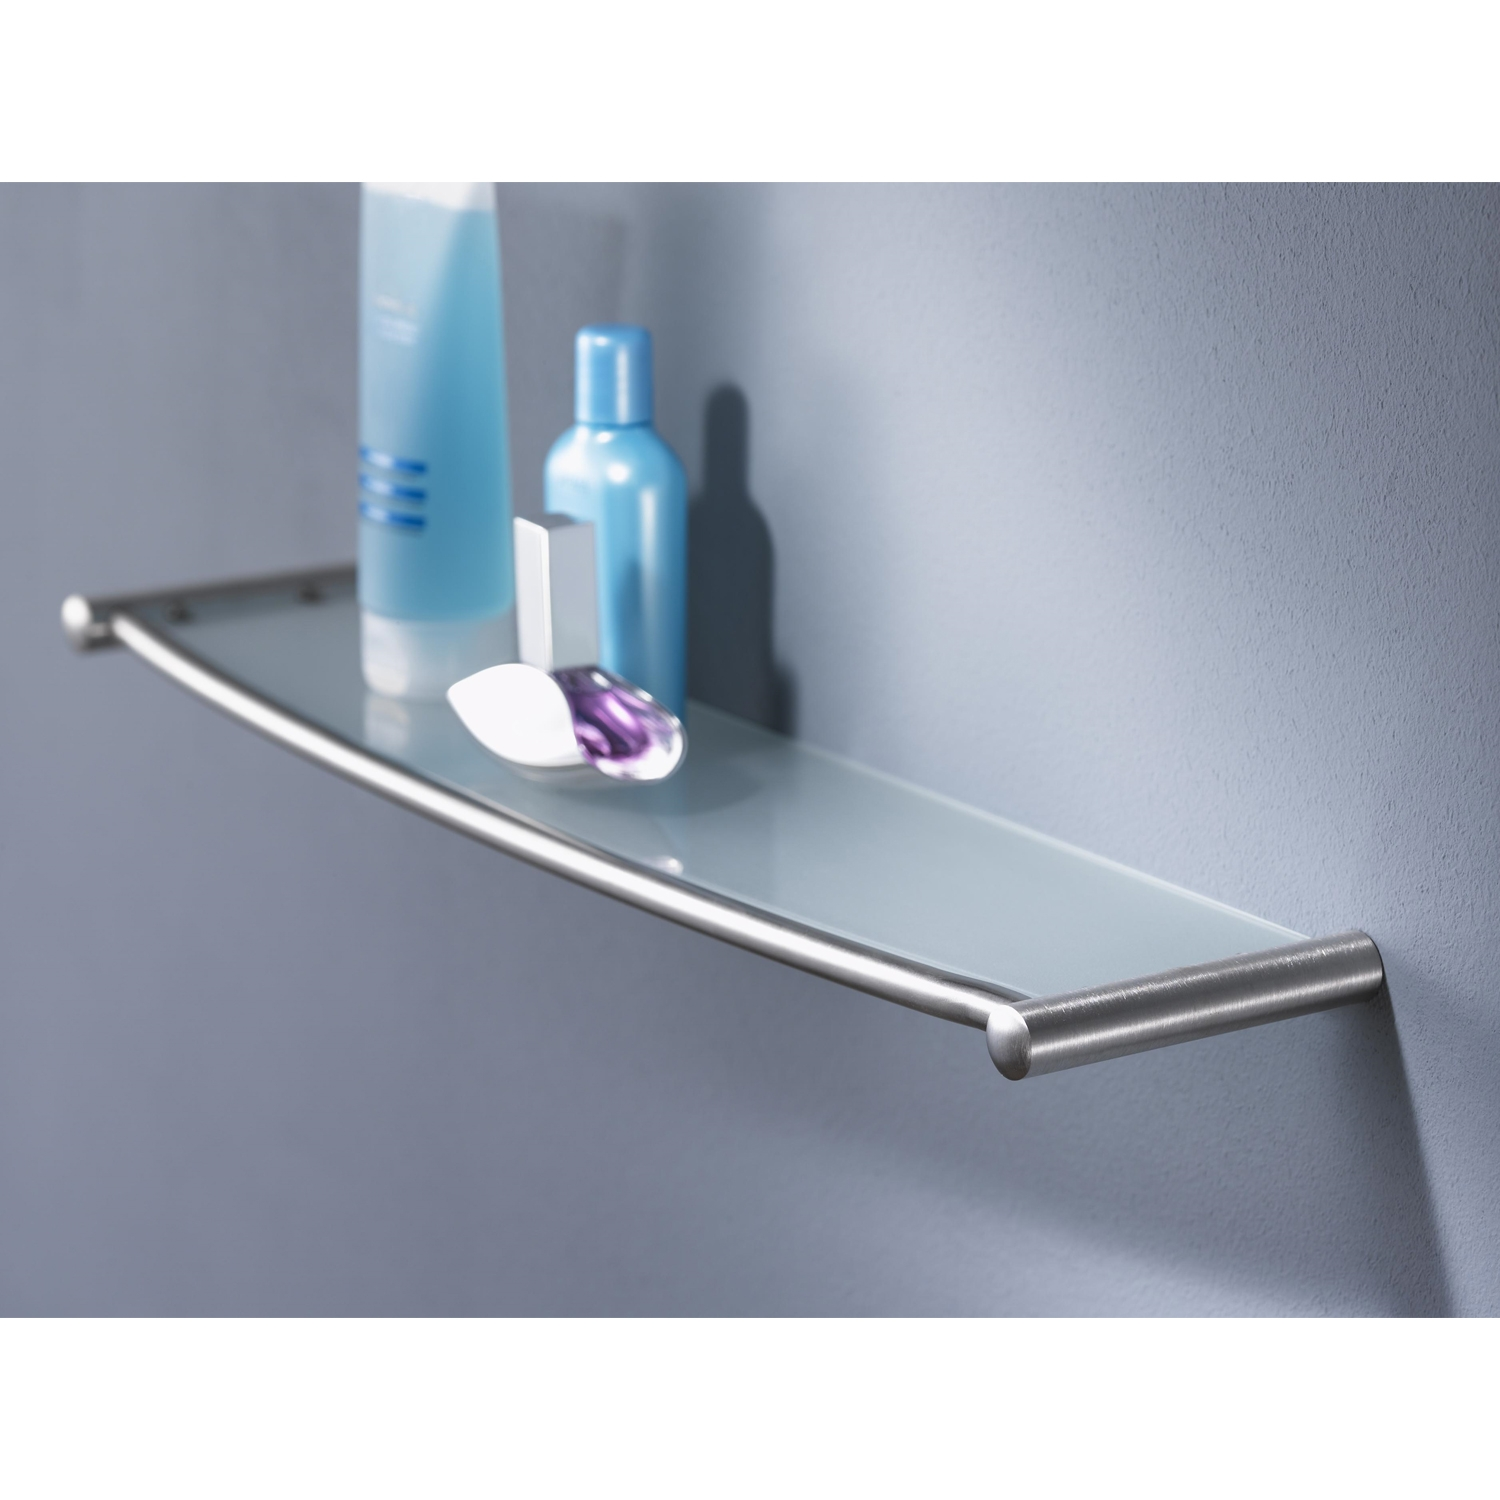 Haceka Silence Glass Shelf 600mm Wide - Chrome